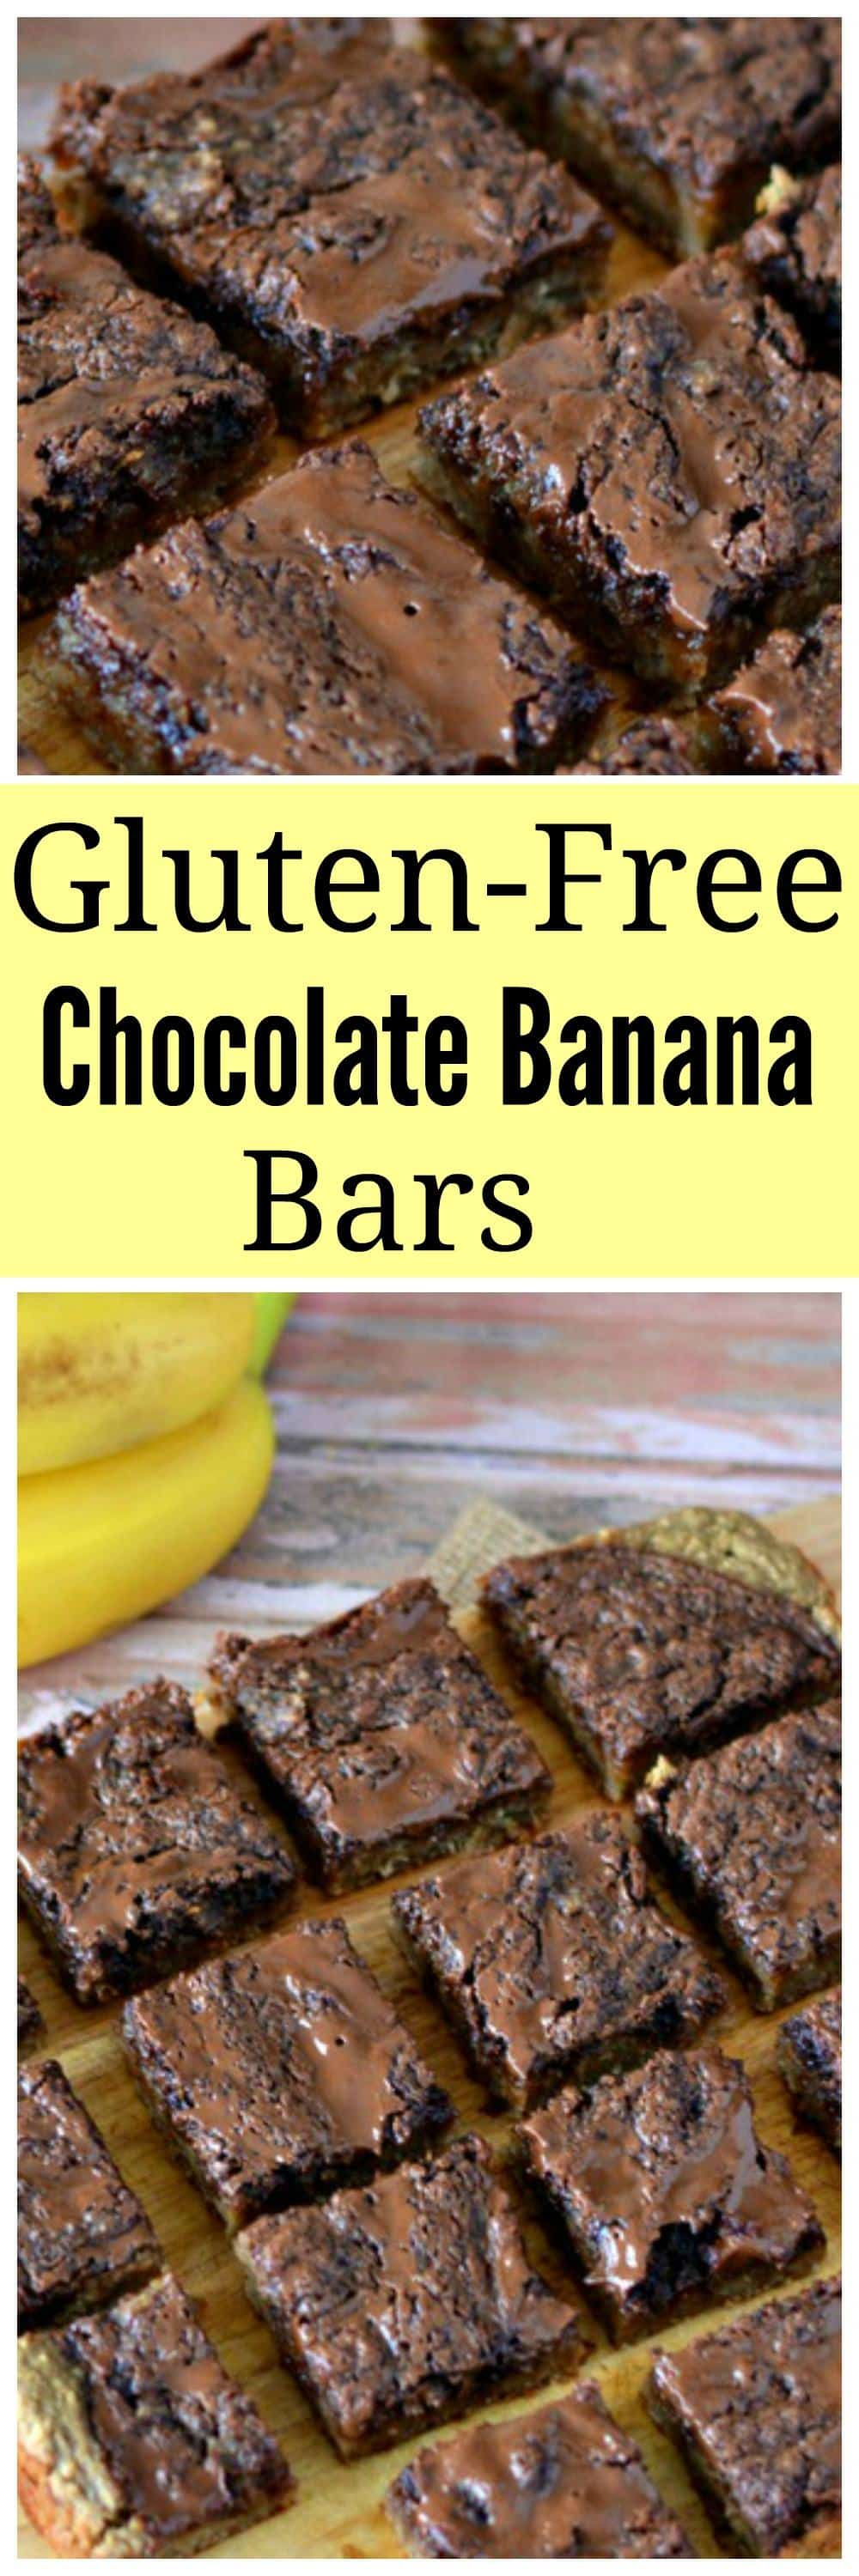 Gluten-Free Chocolate Banana Bars